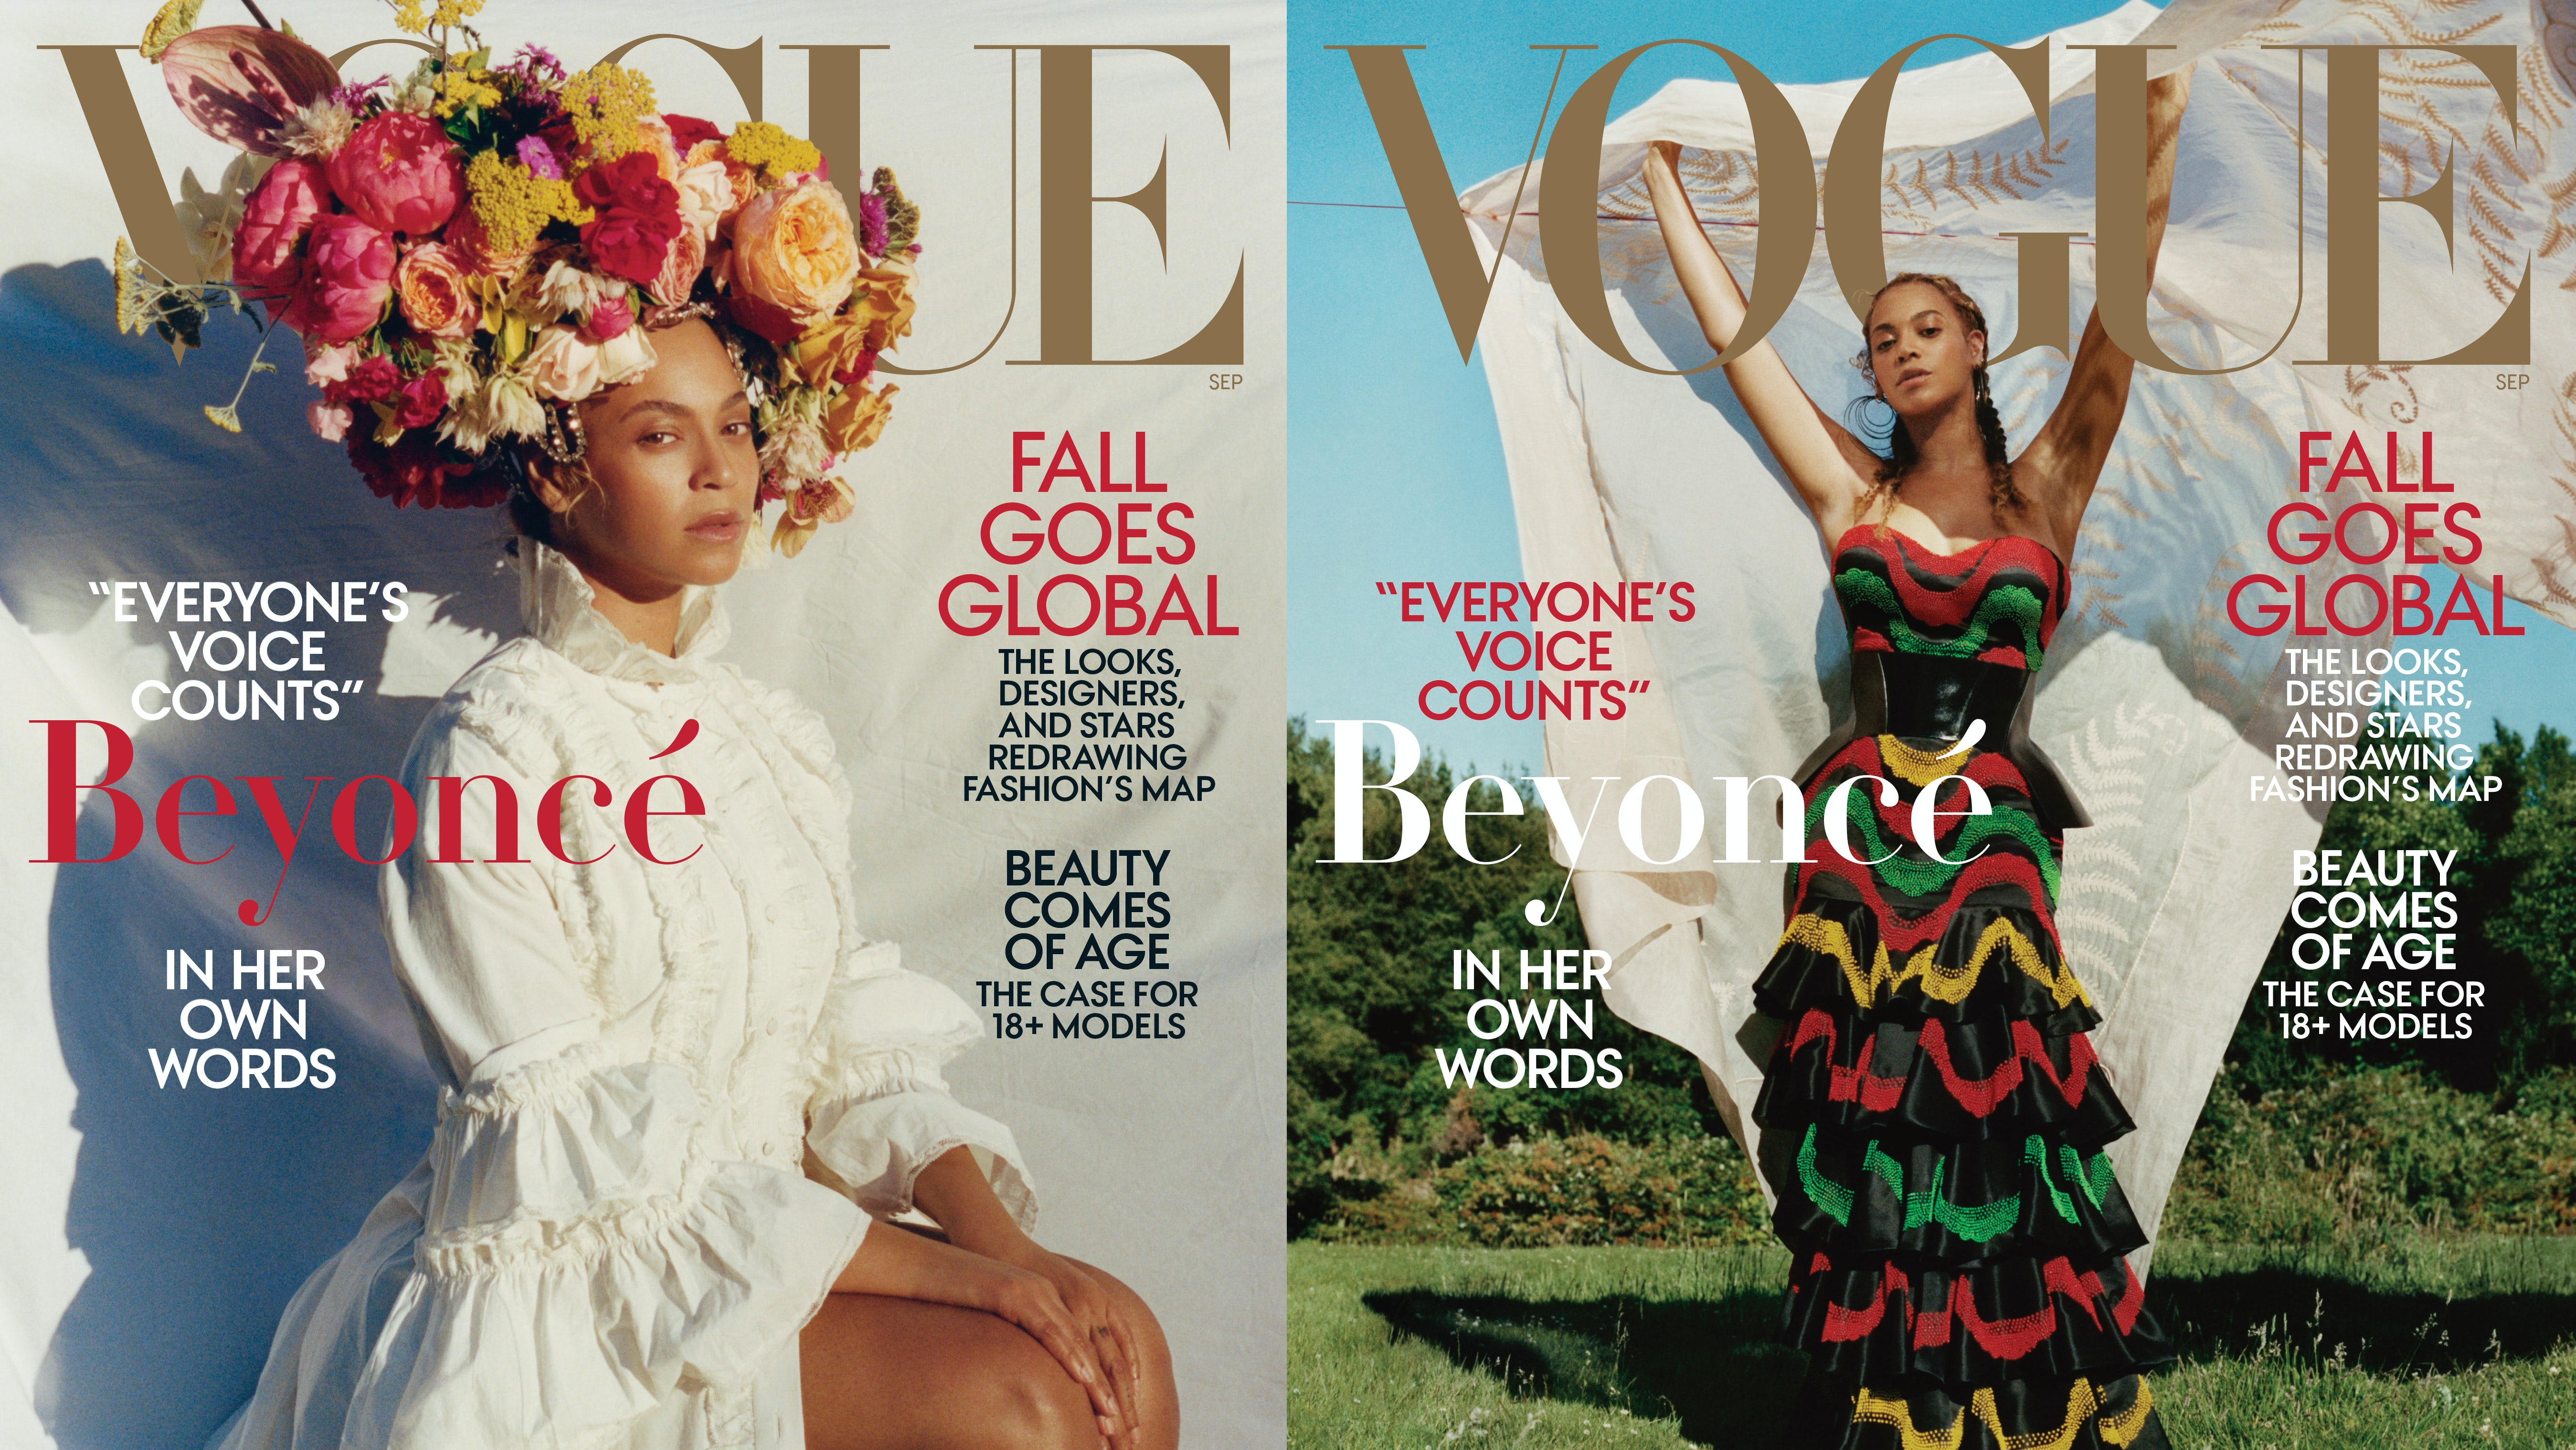 Beyoncé Knowles covers Vogue's September issue | Source: Tyler Mitchell/Vogue